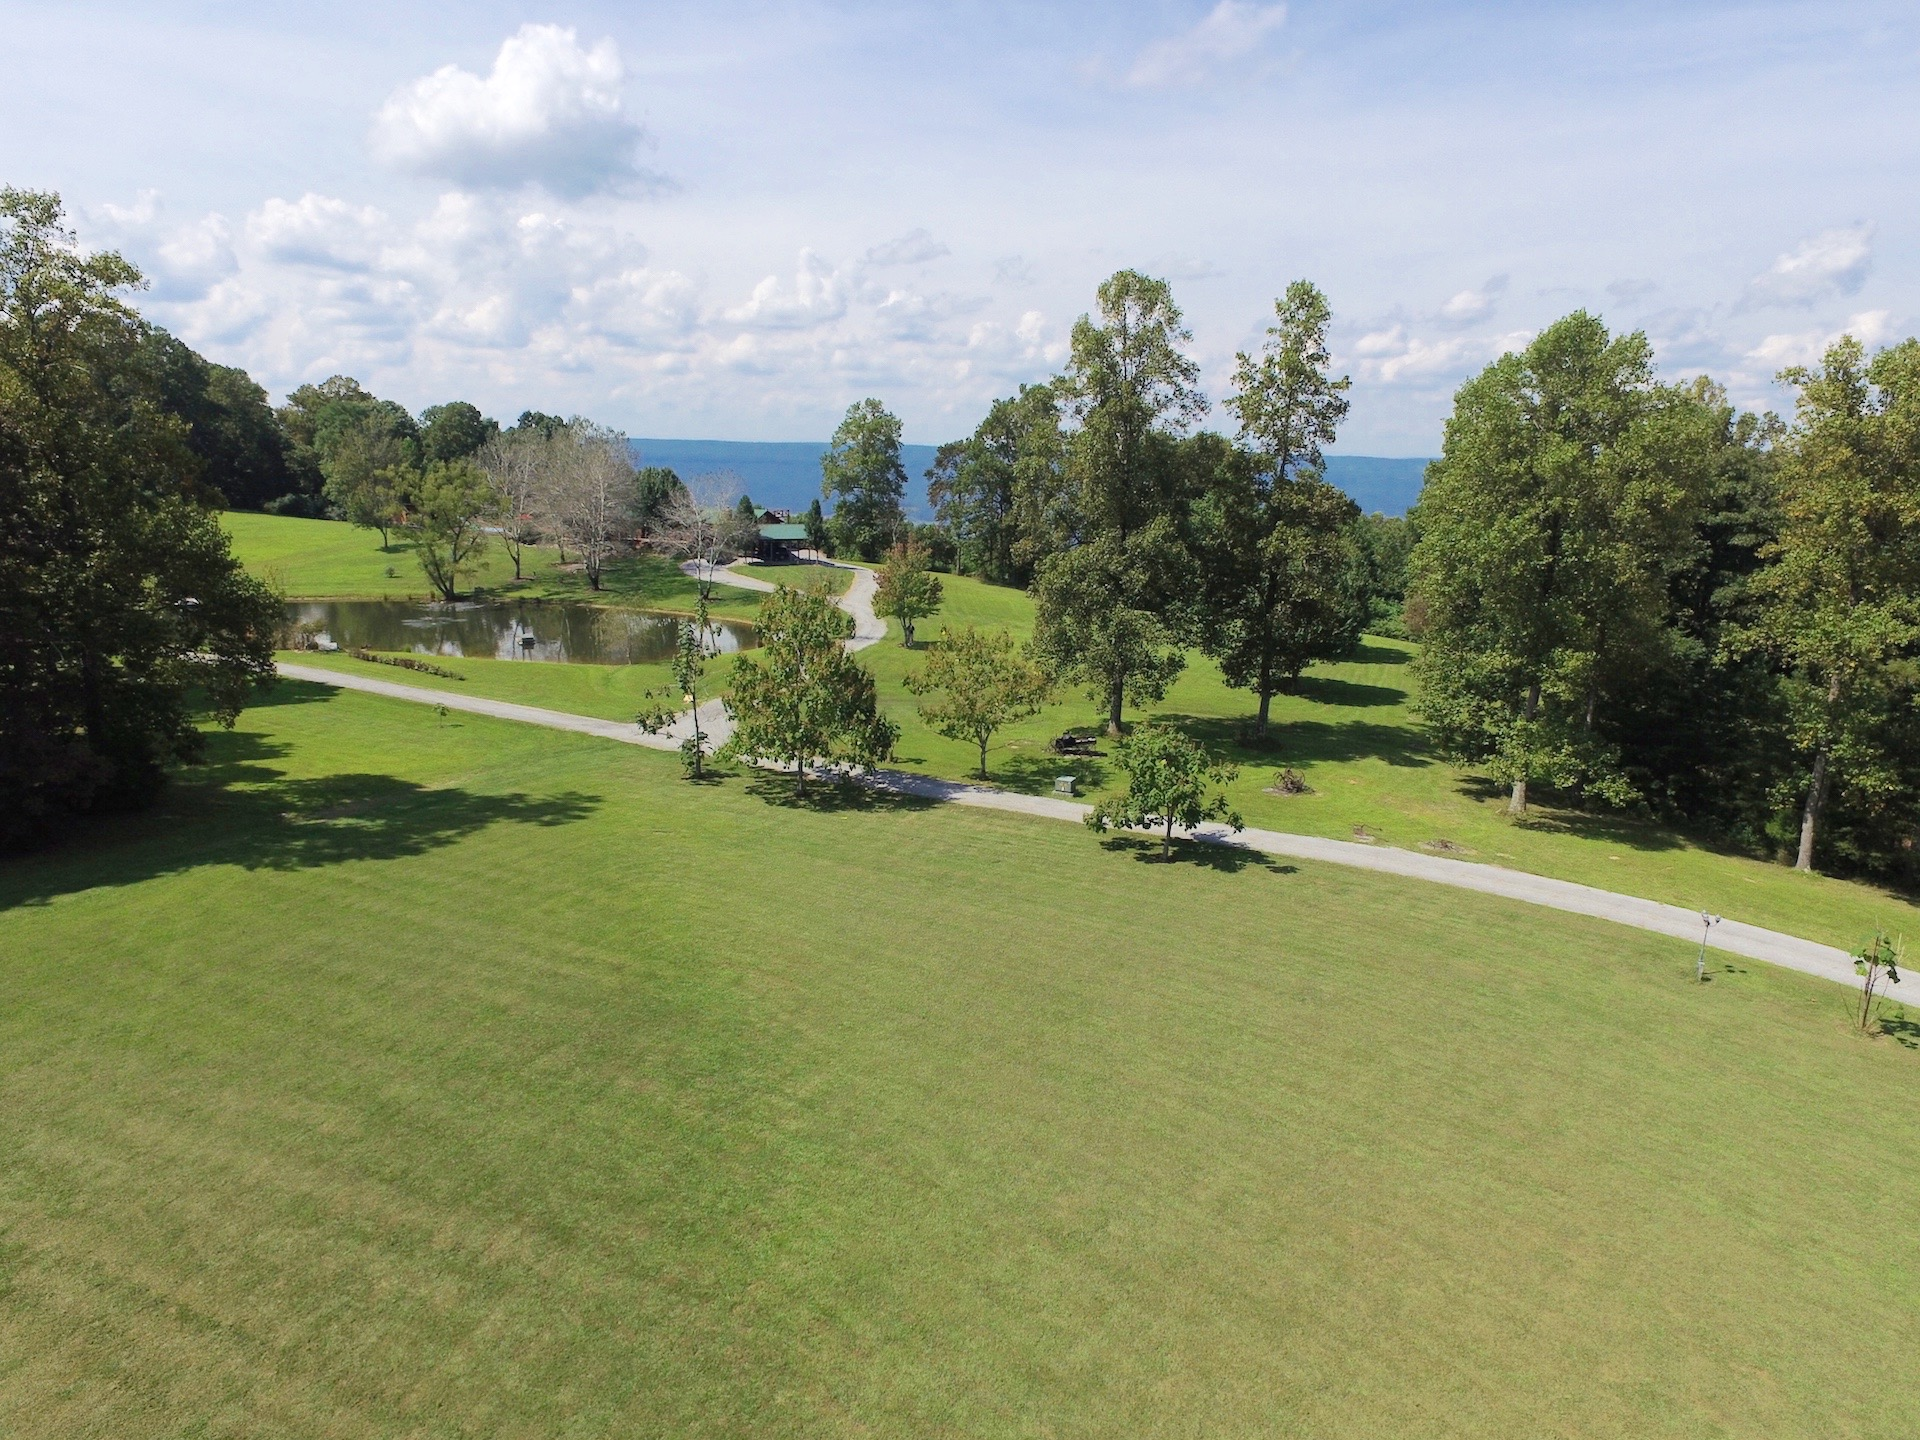 Additional photo for property listing at Little Feather Ranch 1125 Rigsby Gap Road Pikeville, Tennessee 37367 United States